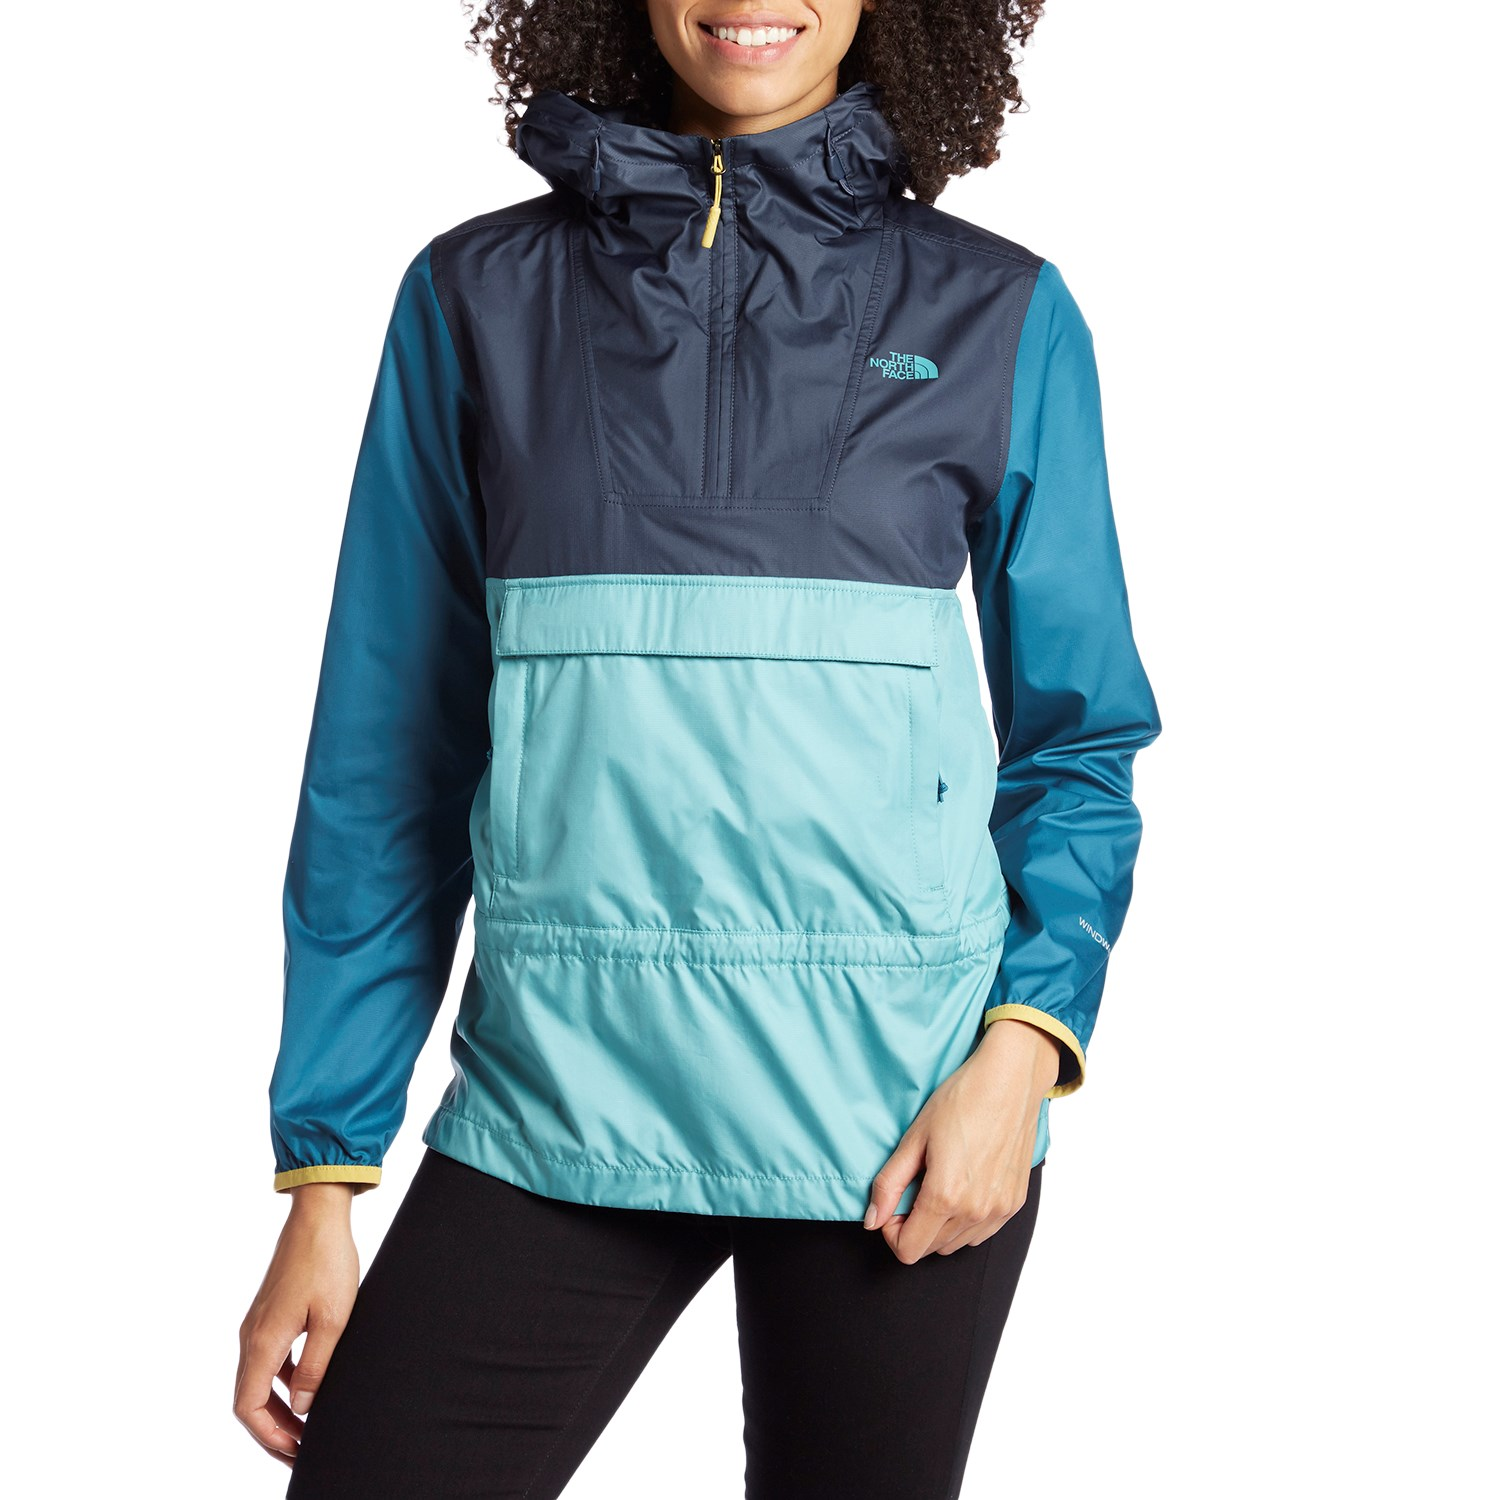 8e323bf29 The North Face Fanorak Pullover Jacket - Women's